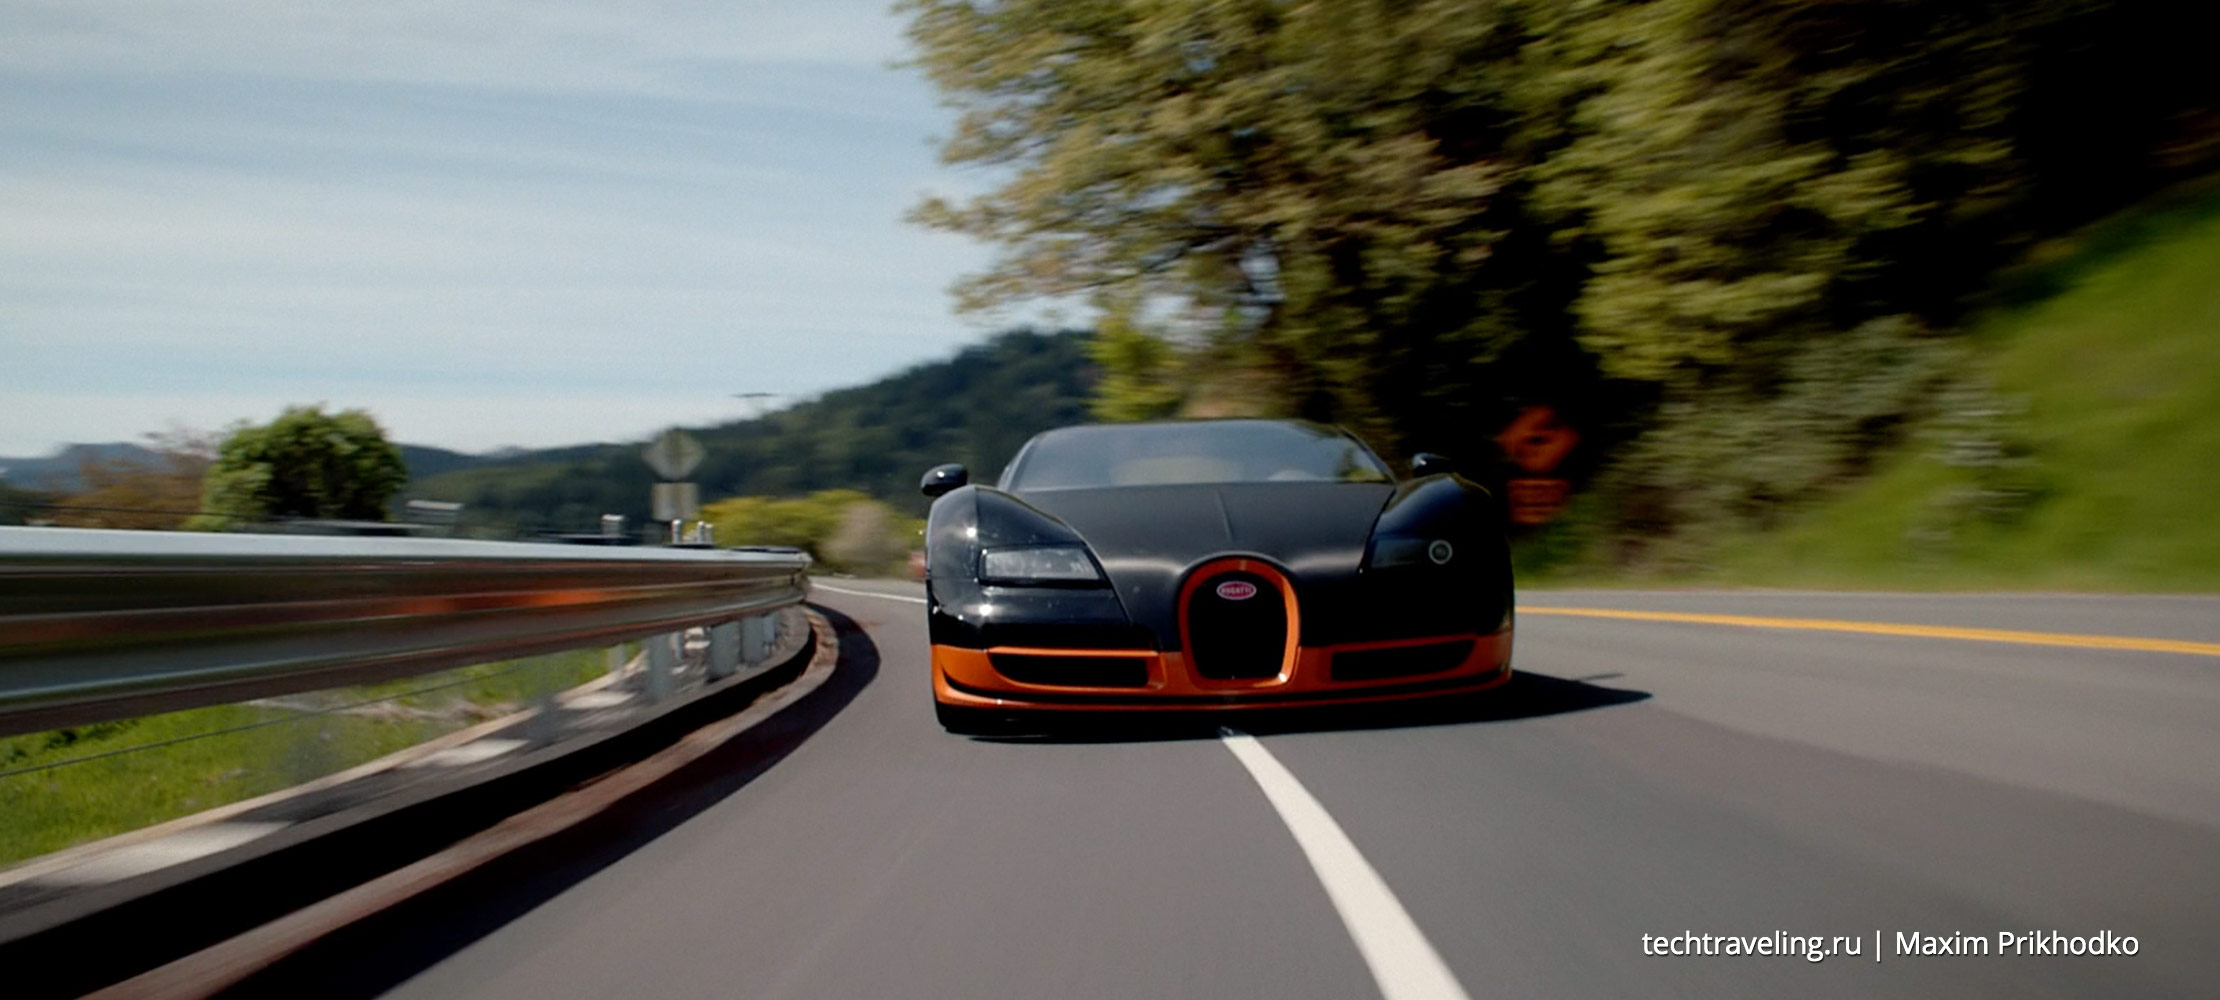 Bugatti Veyron Need For Speed